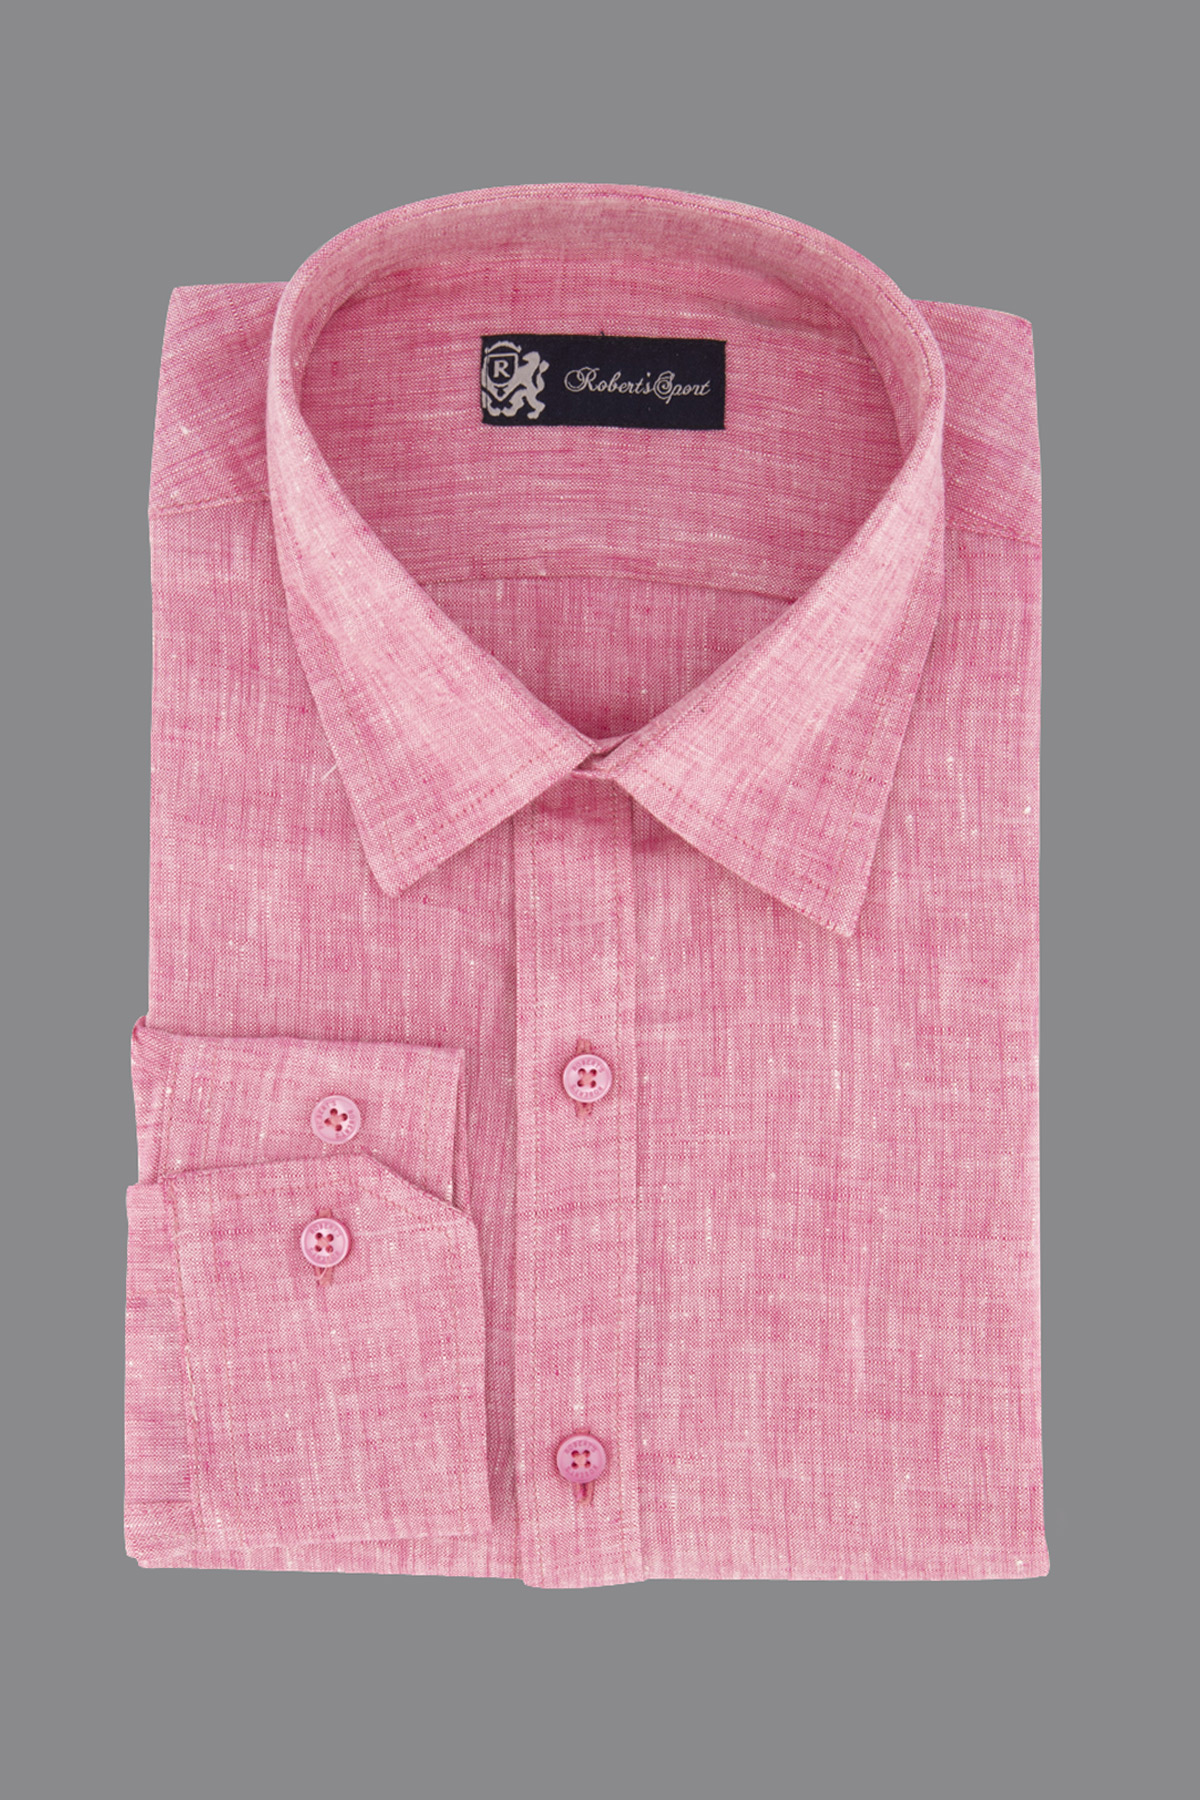 Camisa Robert´s, 100% lino,  Regular fit, color rosa.